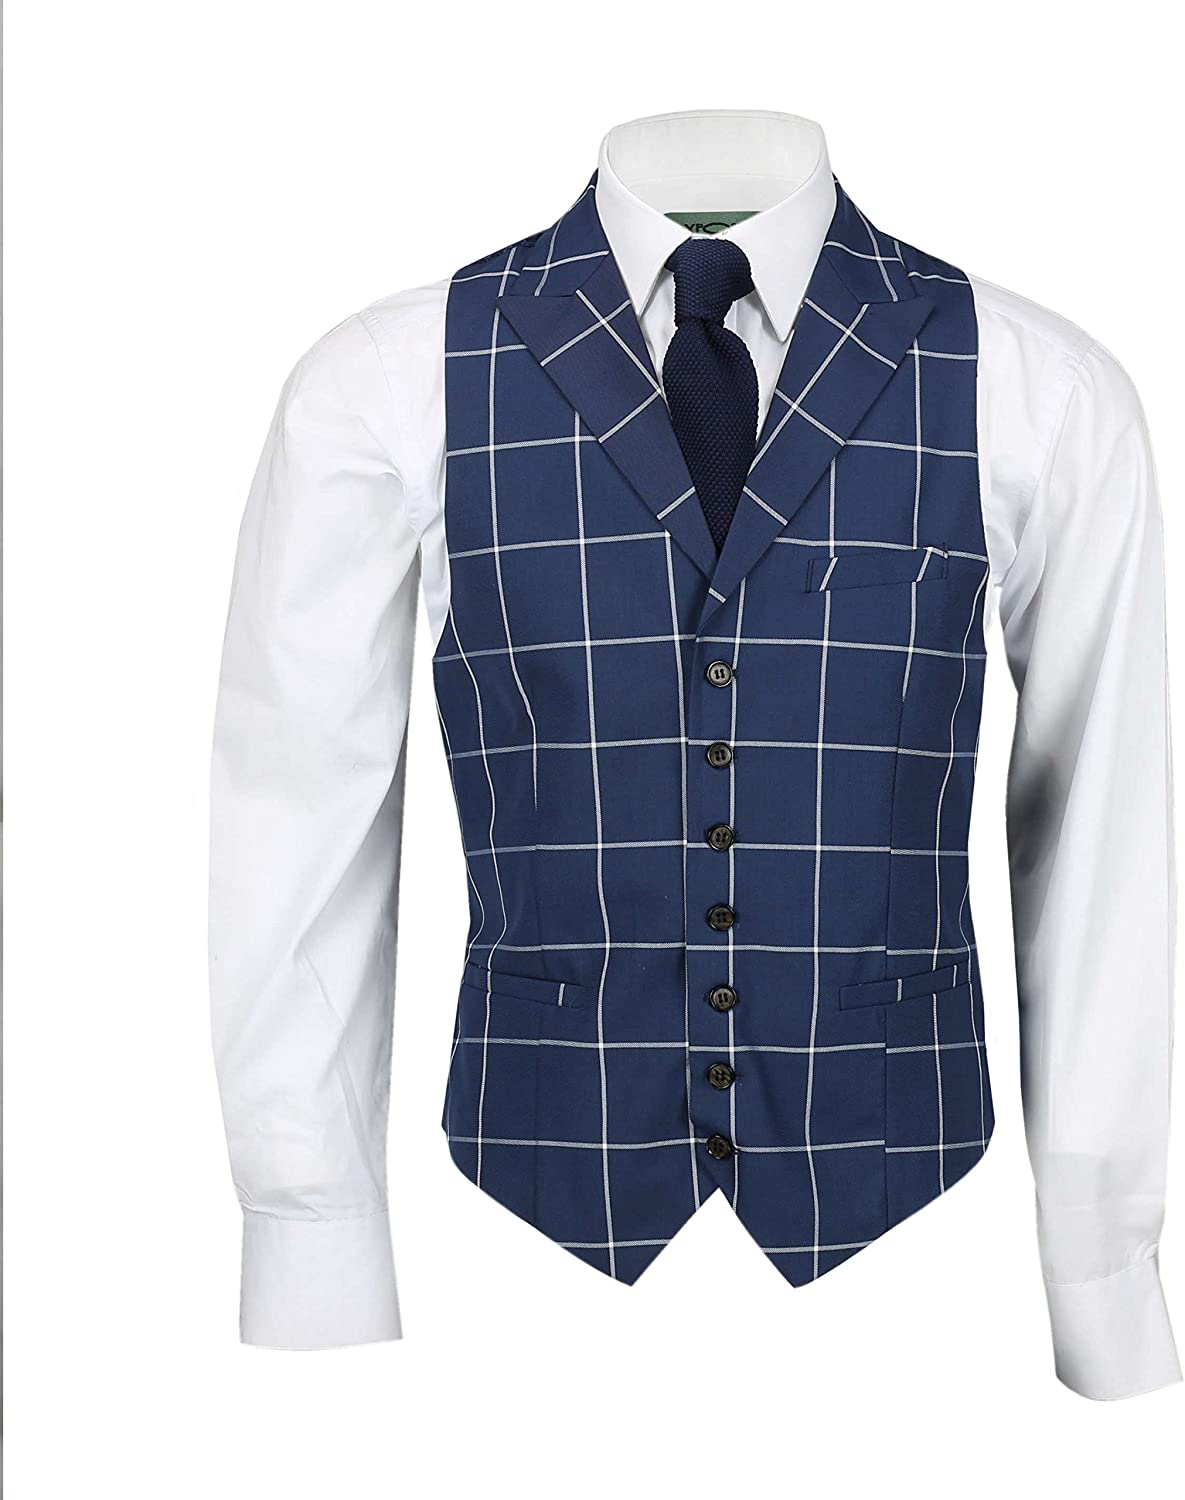 Mens 3 Piece Double Breasted Suit White Window Pane Check on Navy Blue Classic Retro Tailored Fit